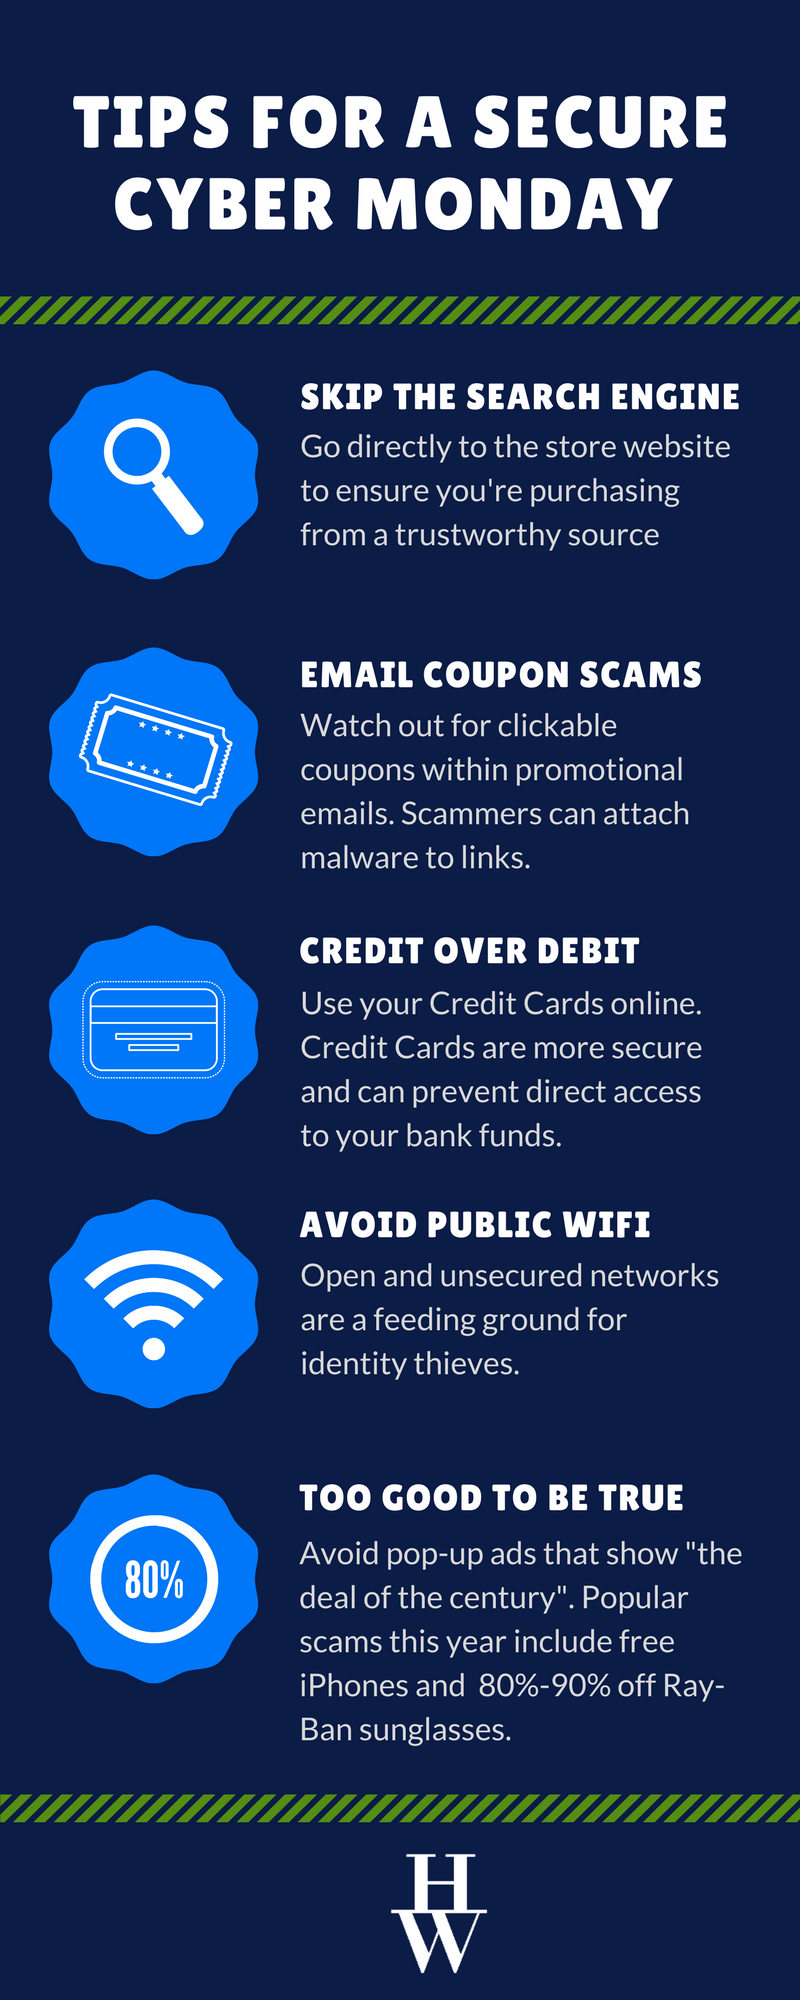 Tips for a secure Cyber Monday